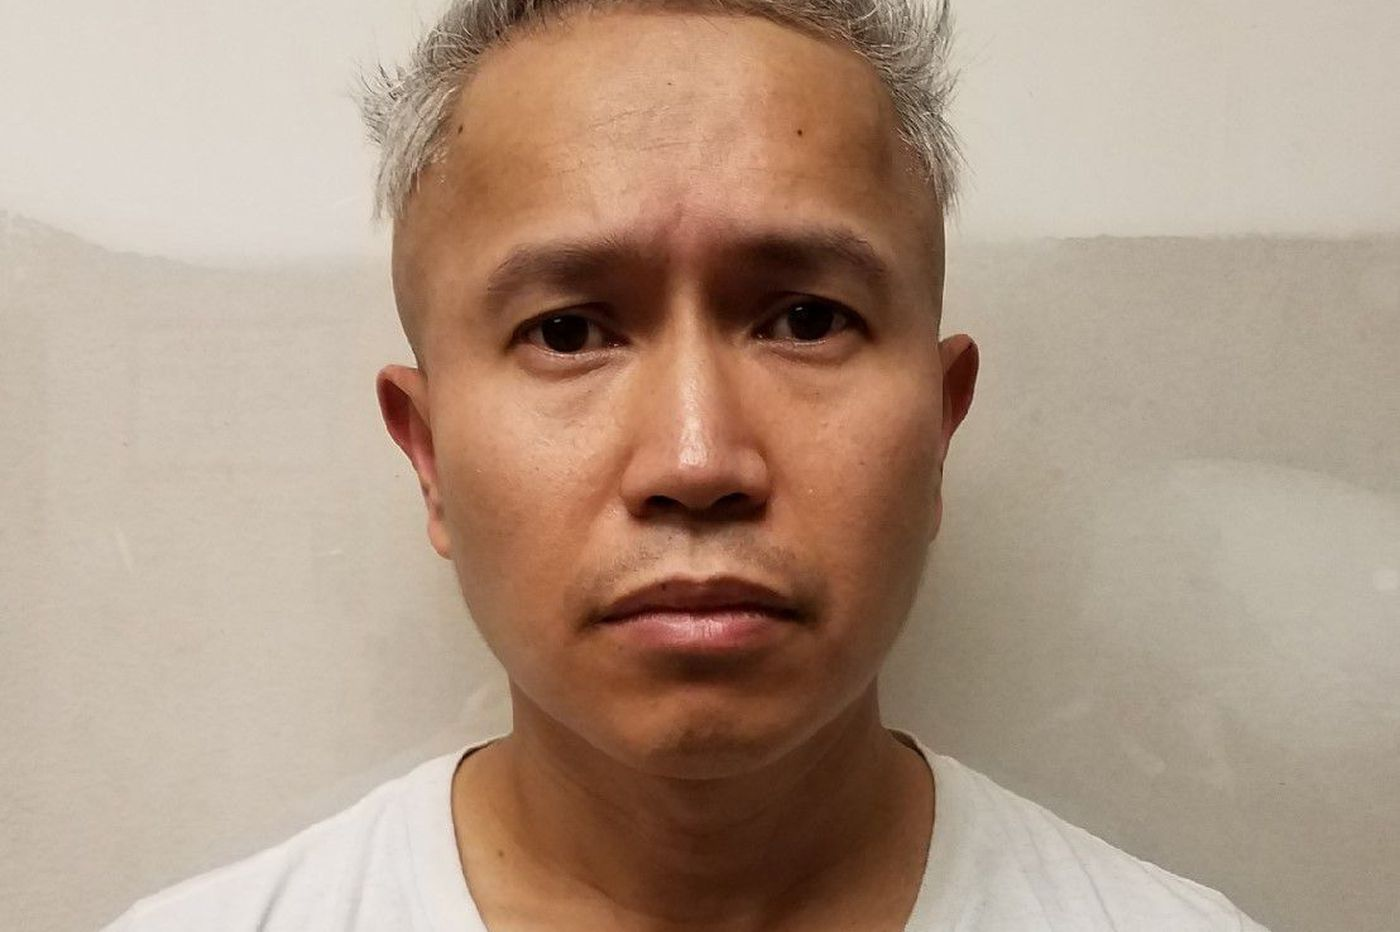 Man arrested in sexual assault of woman on PATCO train